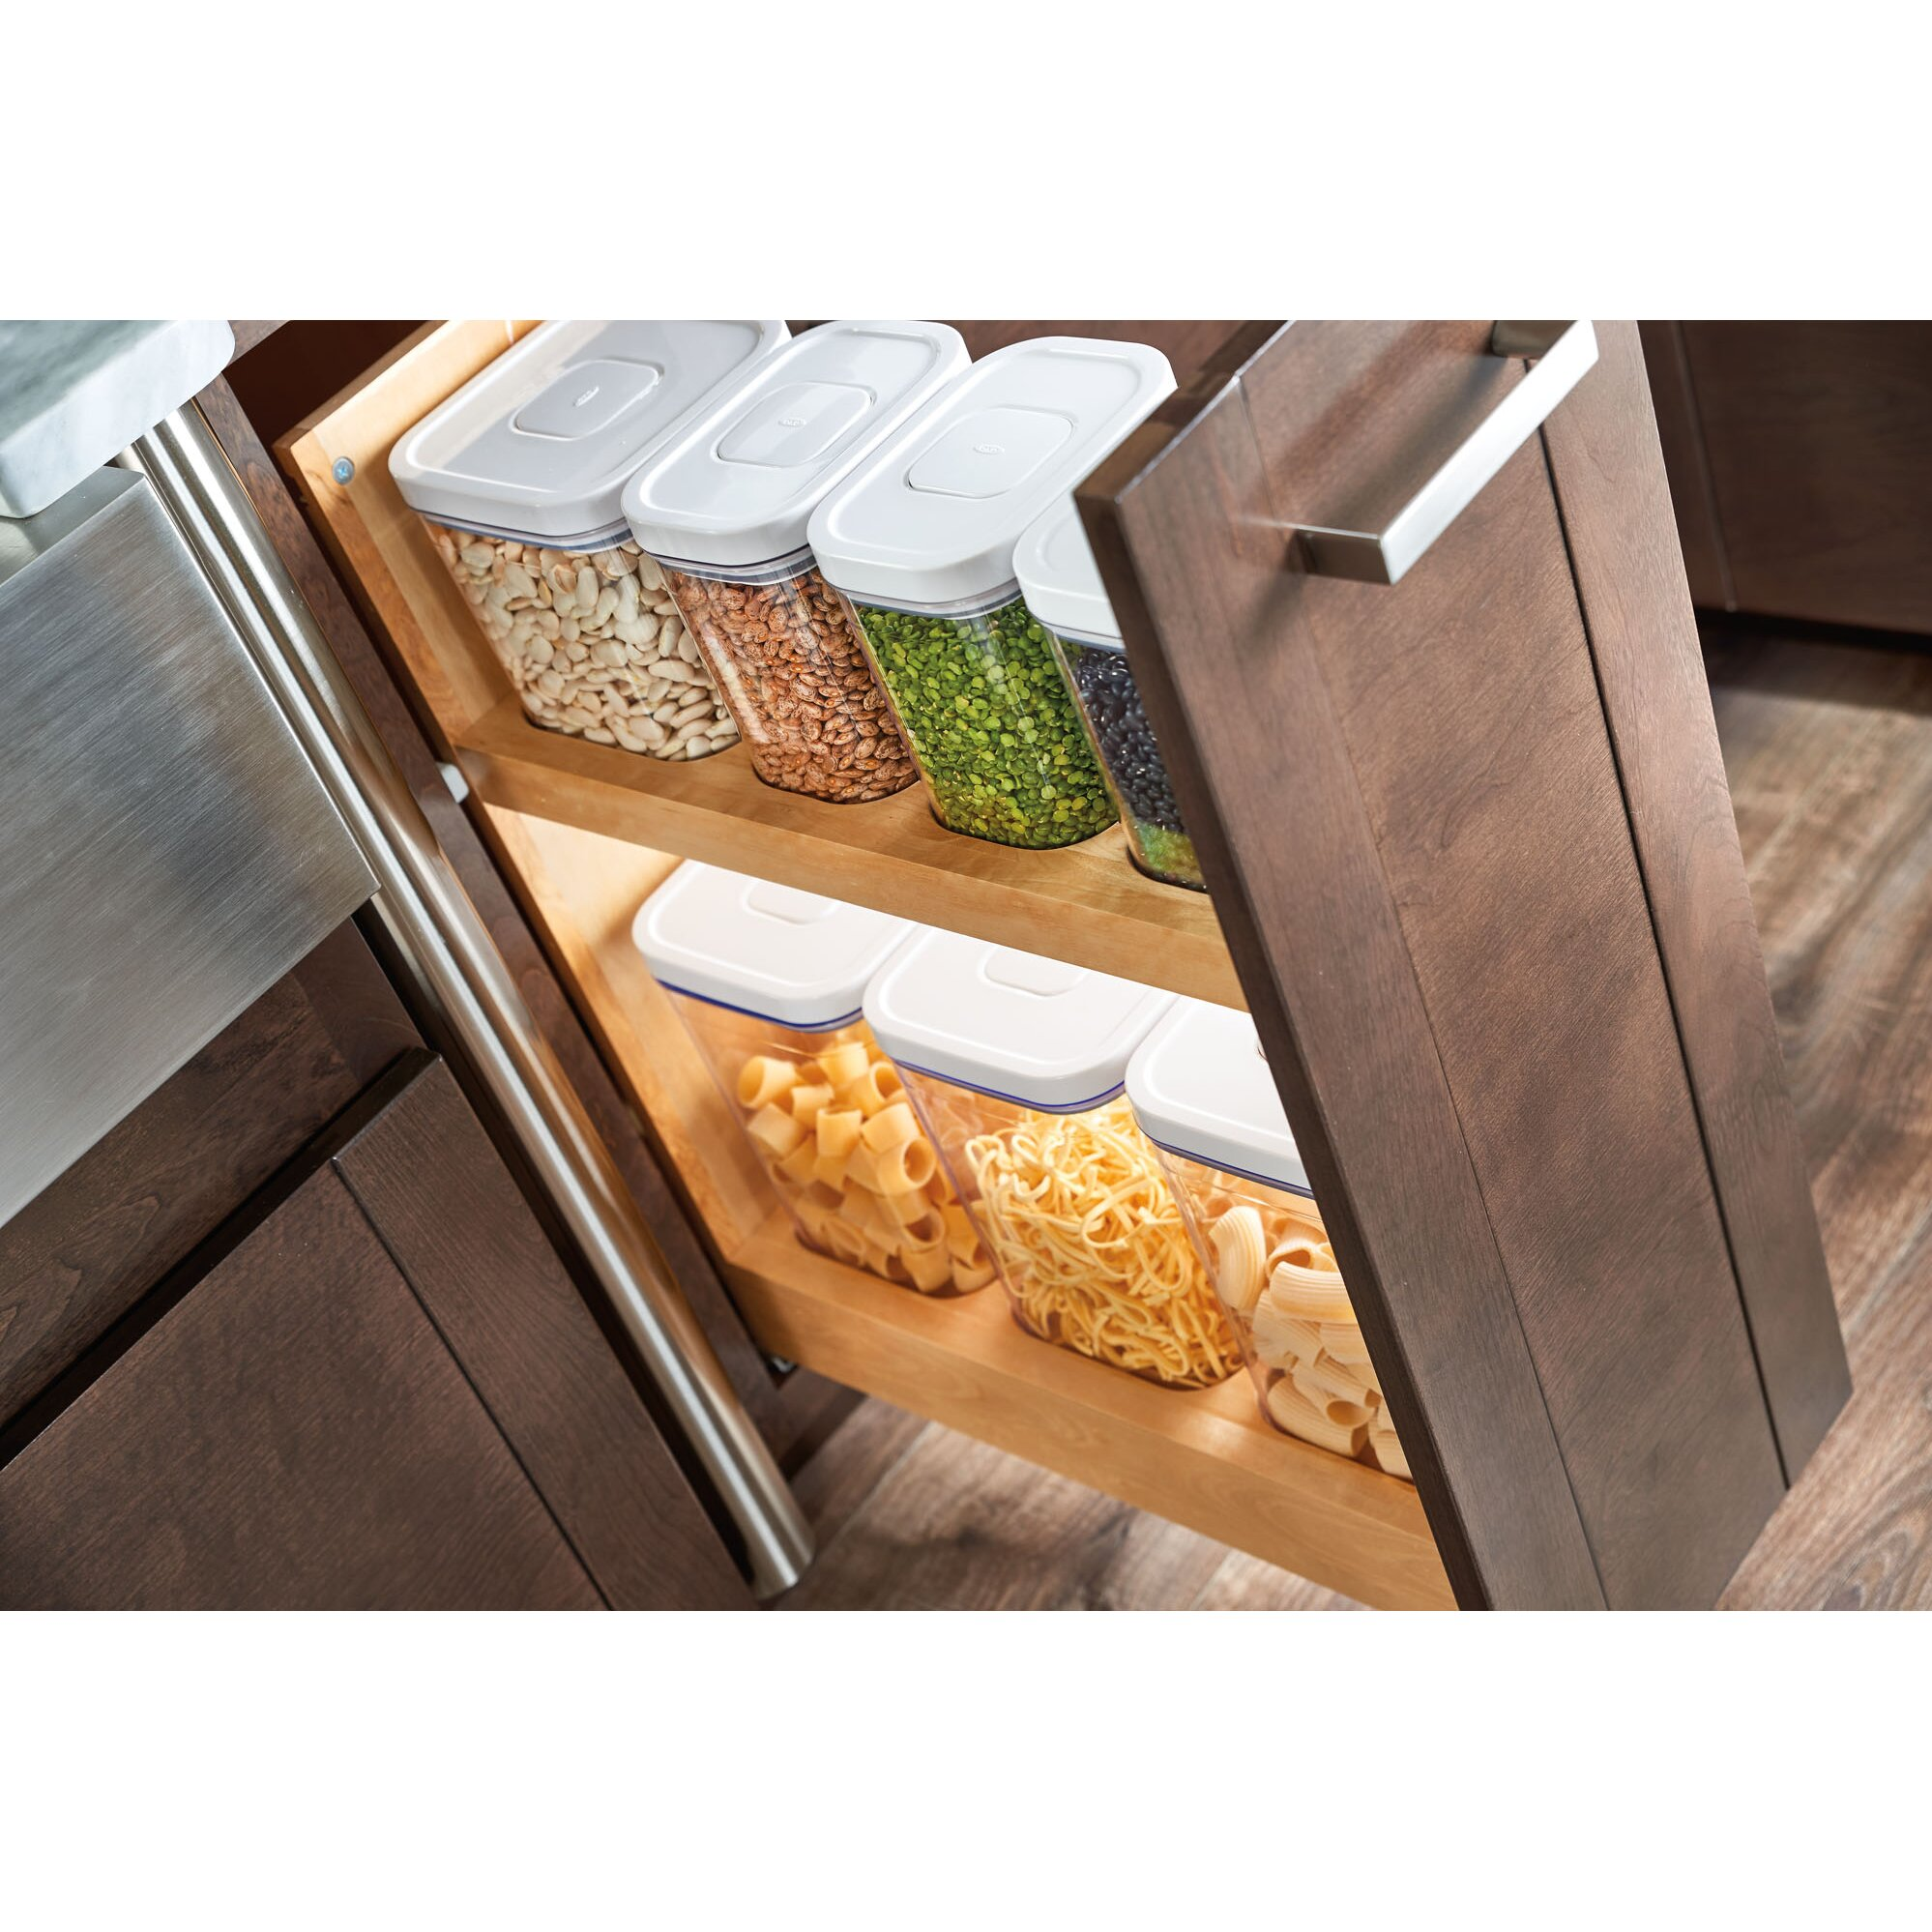 Pull Out Cabinet Base Cabinet Pull Out Shelves Pull Out: Rev-A-Shelf Pull-Out Wood Base Cabinet OXO Organizer